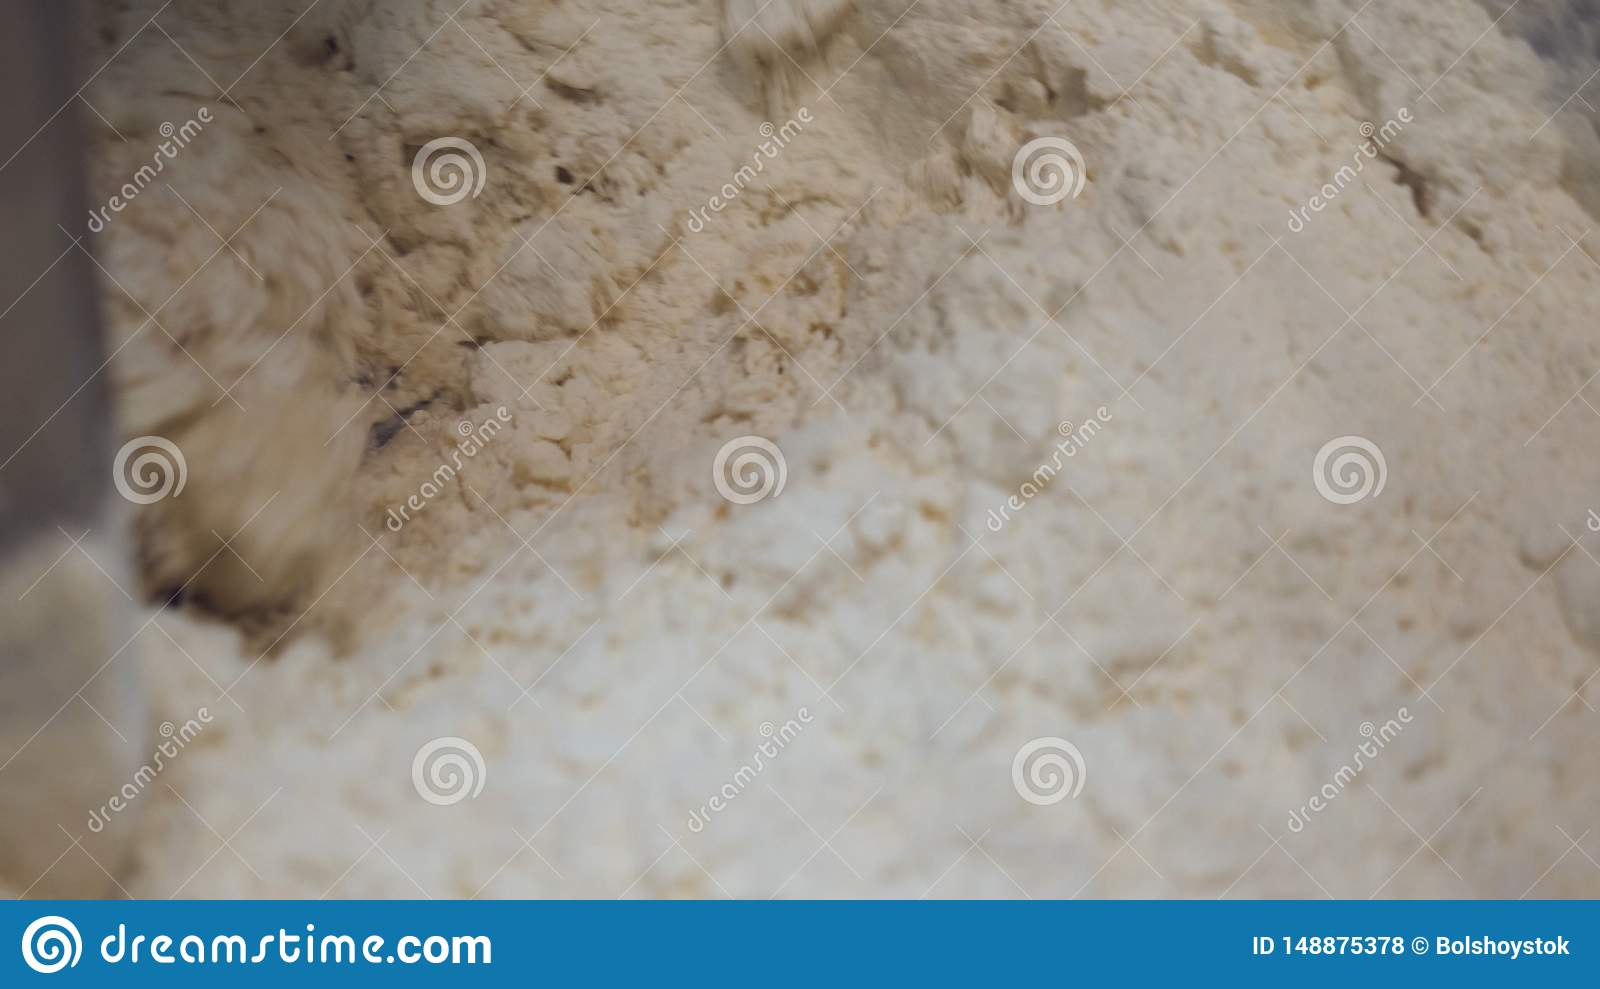 Product industry flour confectionery